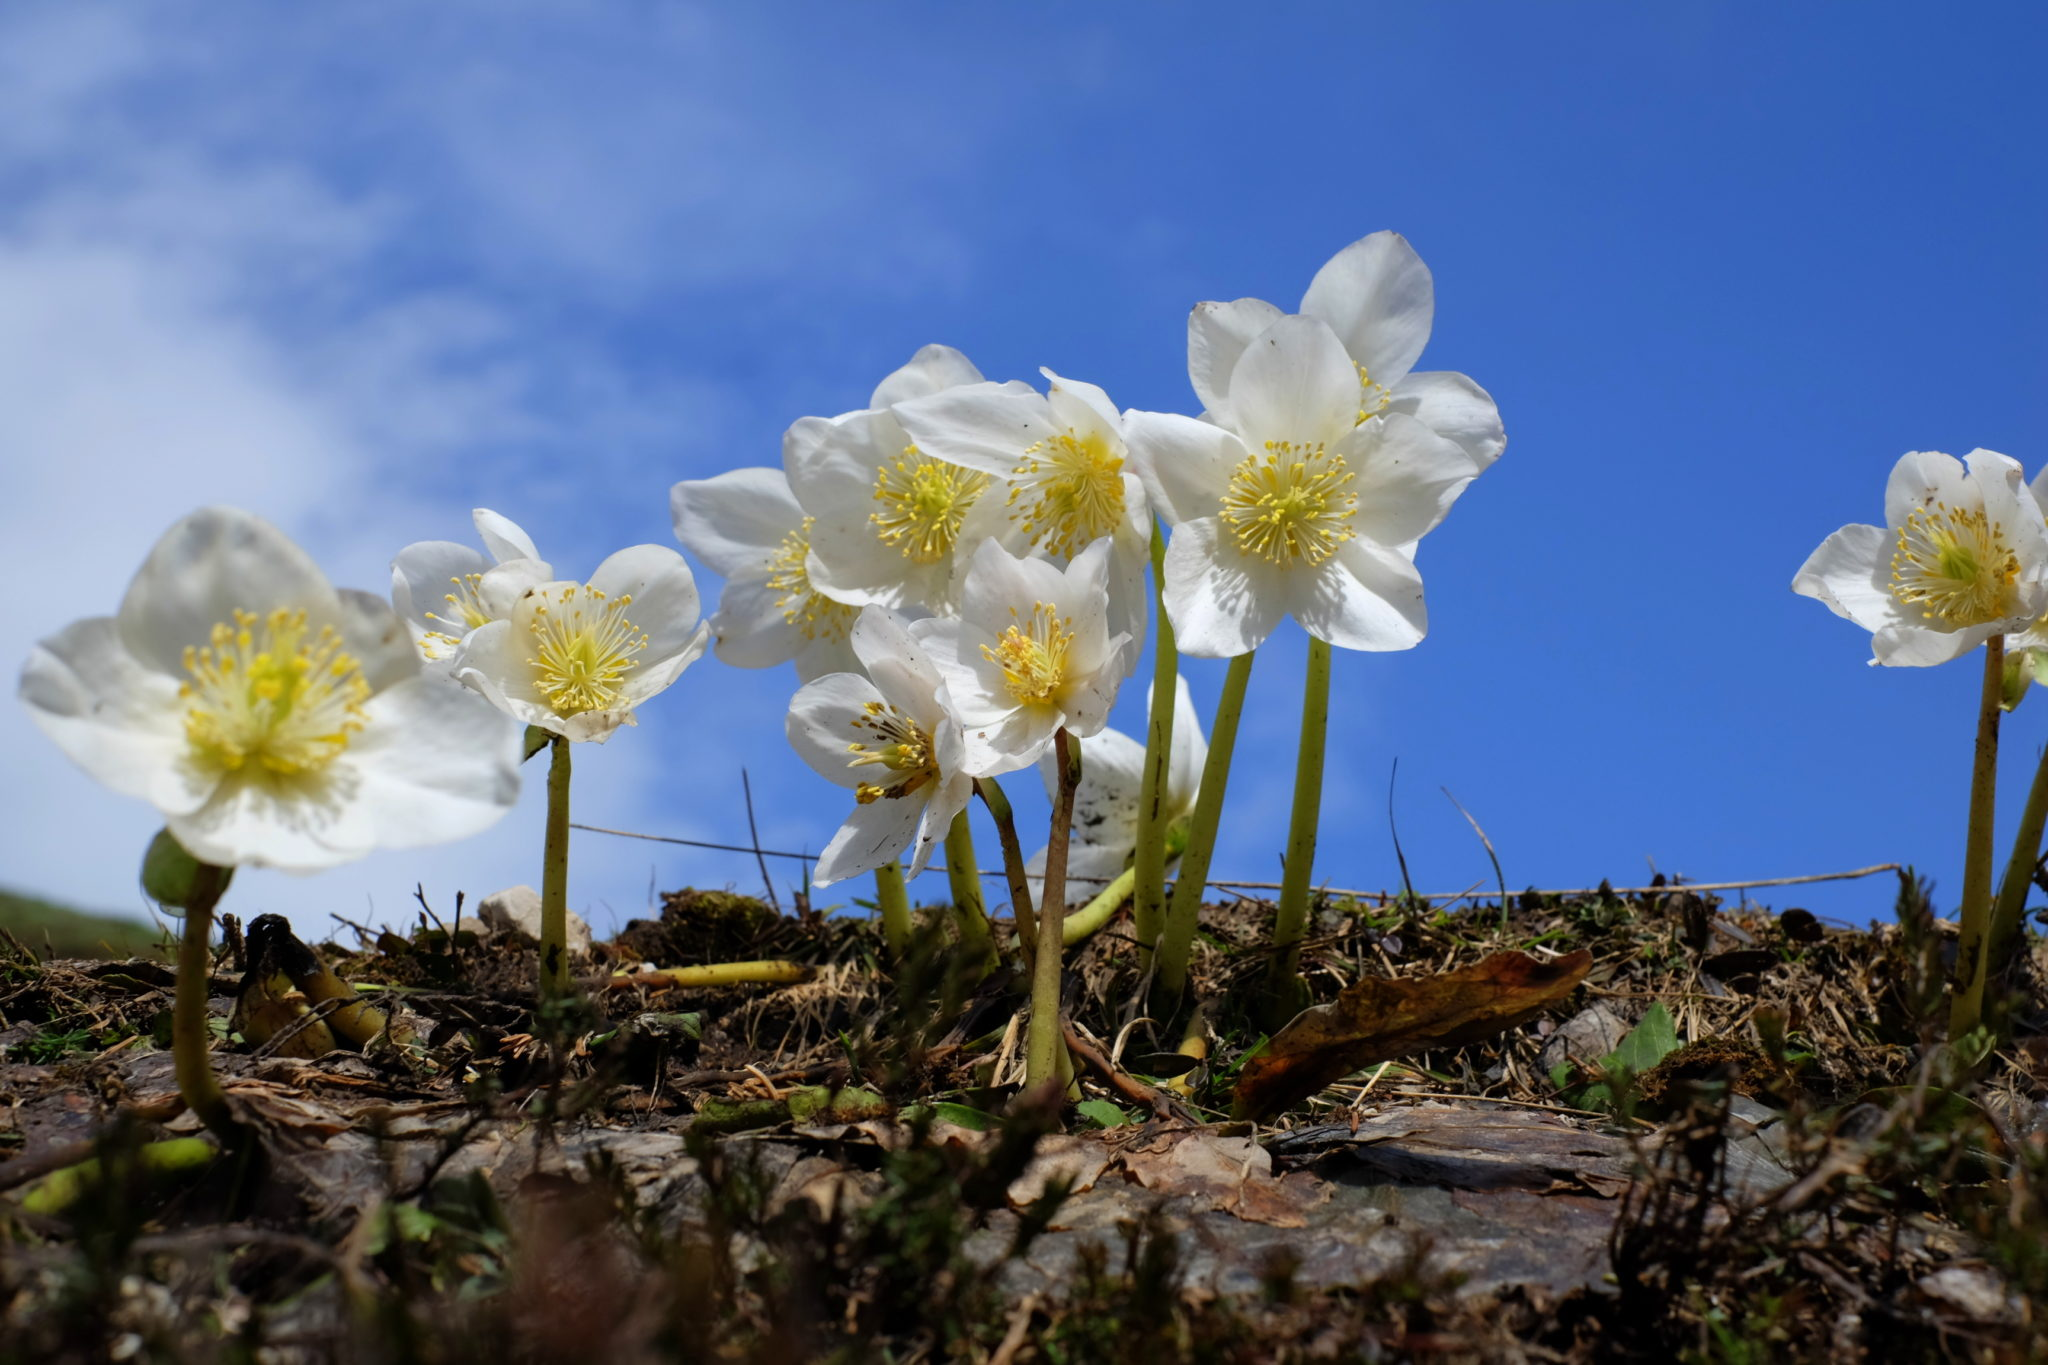 Blooming hellebores in the mountains, Slovenia, the Karawanks